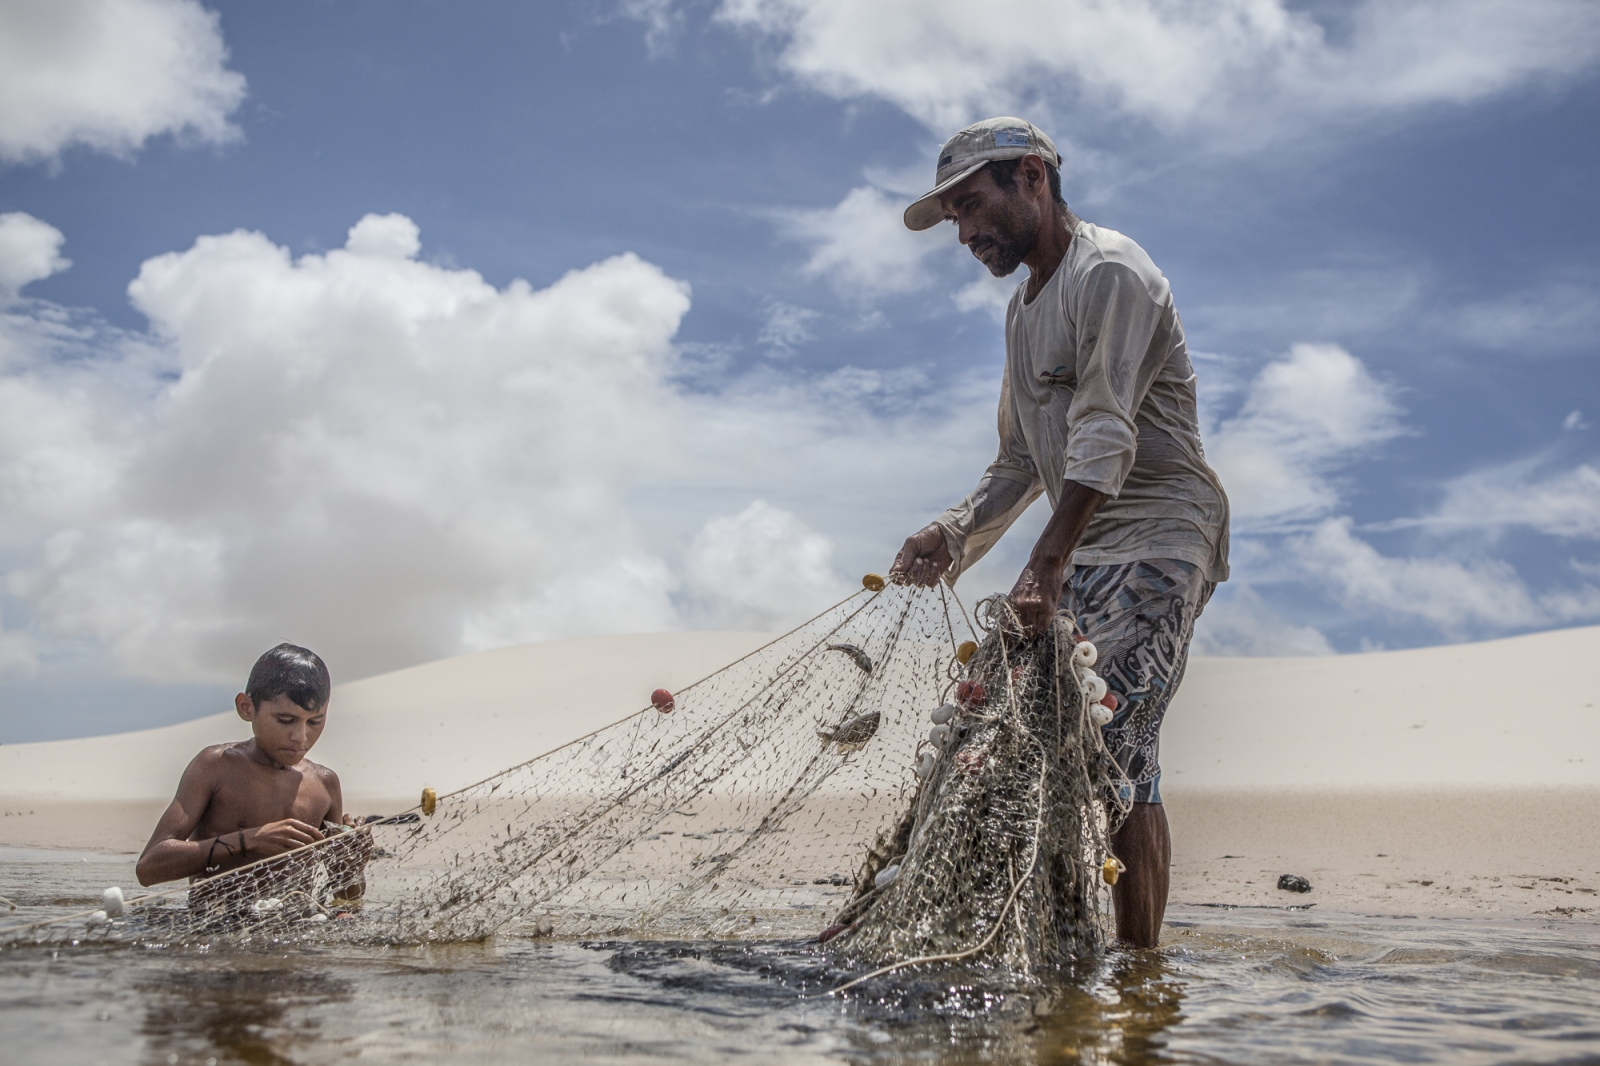 Aldemir Brito, 39, fishing with his son Adriel, 13, in one of the lagoons close to his house in Queimada dos Britos. The knowledge of living in the dunes is passed from father to son for generations. They live of fishing in the sea, which is two hours away. In the winter they breed fish on the lagoons, and cattle and goats that run free on the dunes. They have a small garden for farming but nothing major since they are afraid of the accelerating advance of the dunes that have already covered several houses.